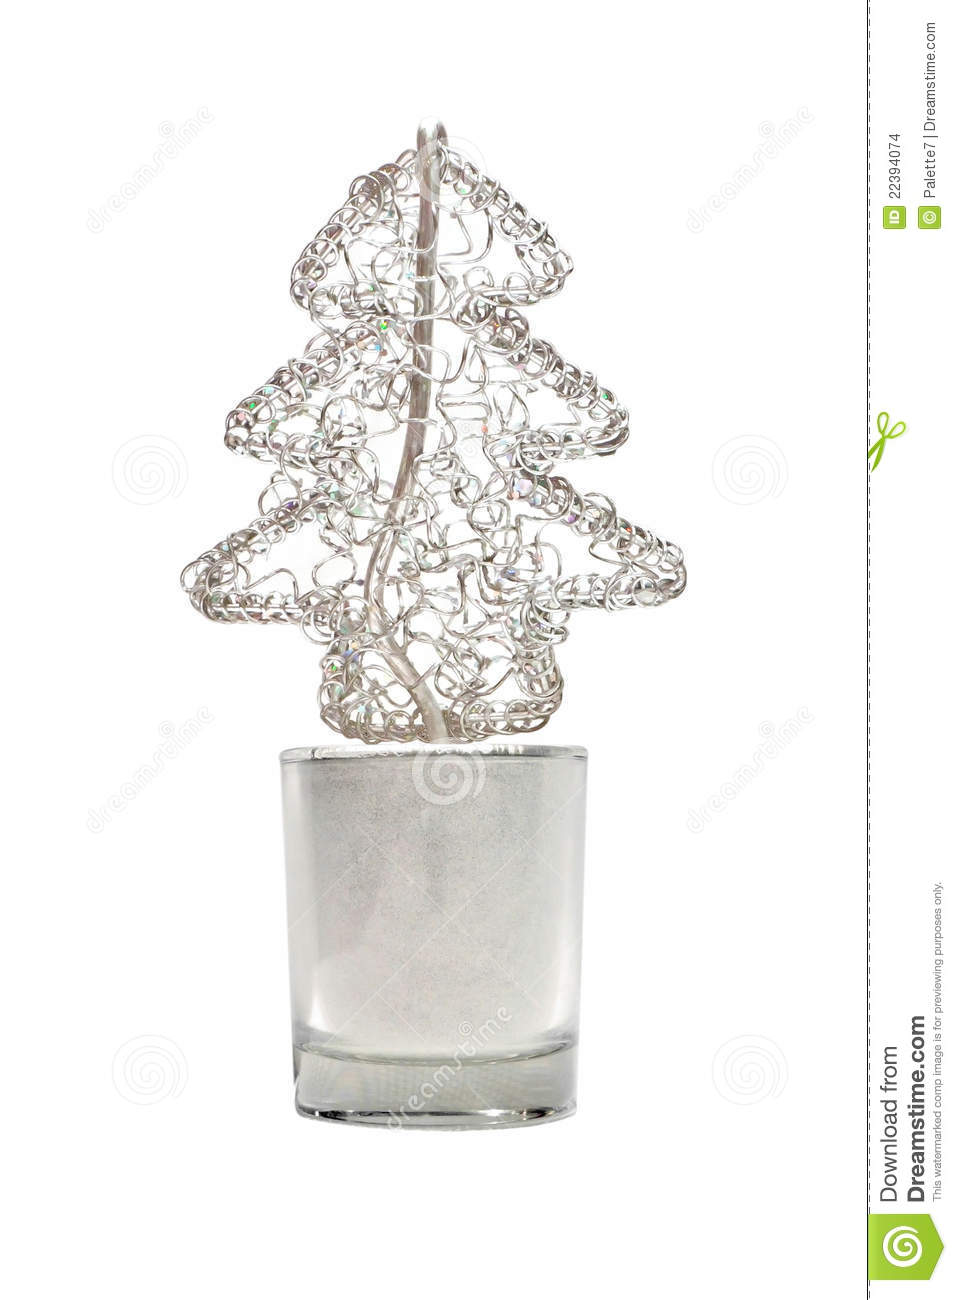 download abstract wired metal christmas tree in small glass stock photo image of celebration - Small Metal Christmas Tree